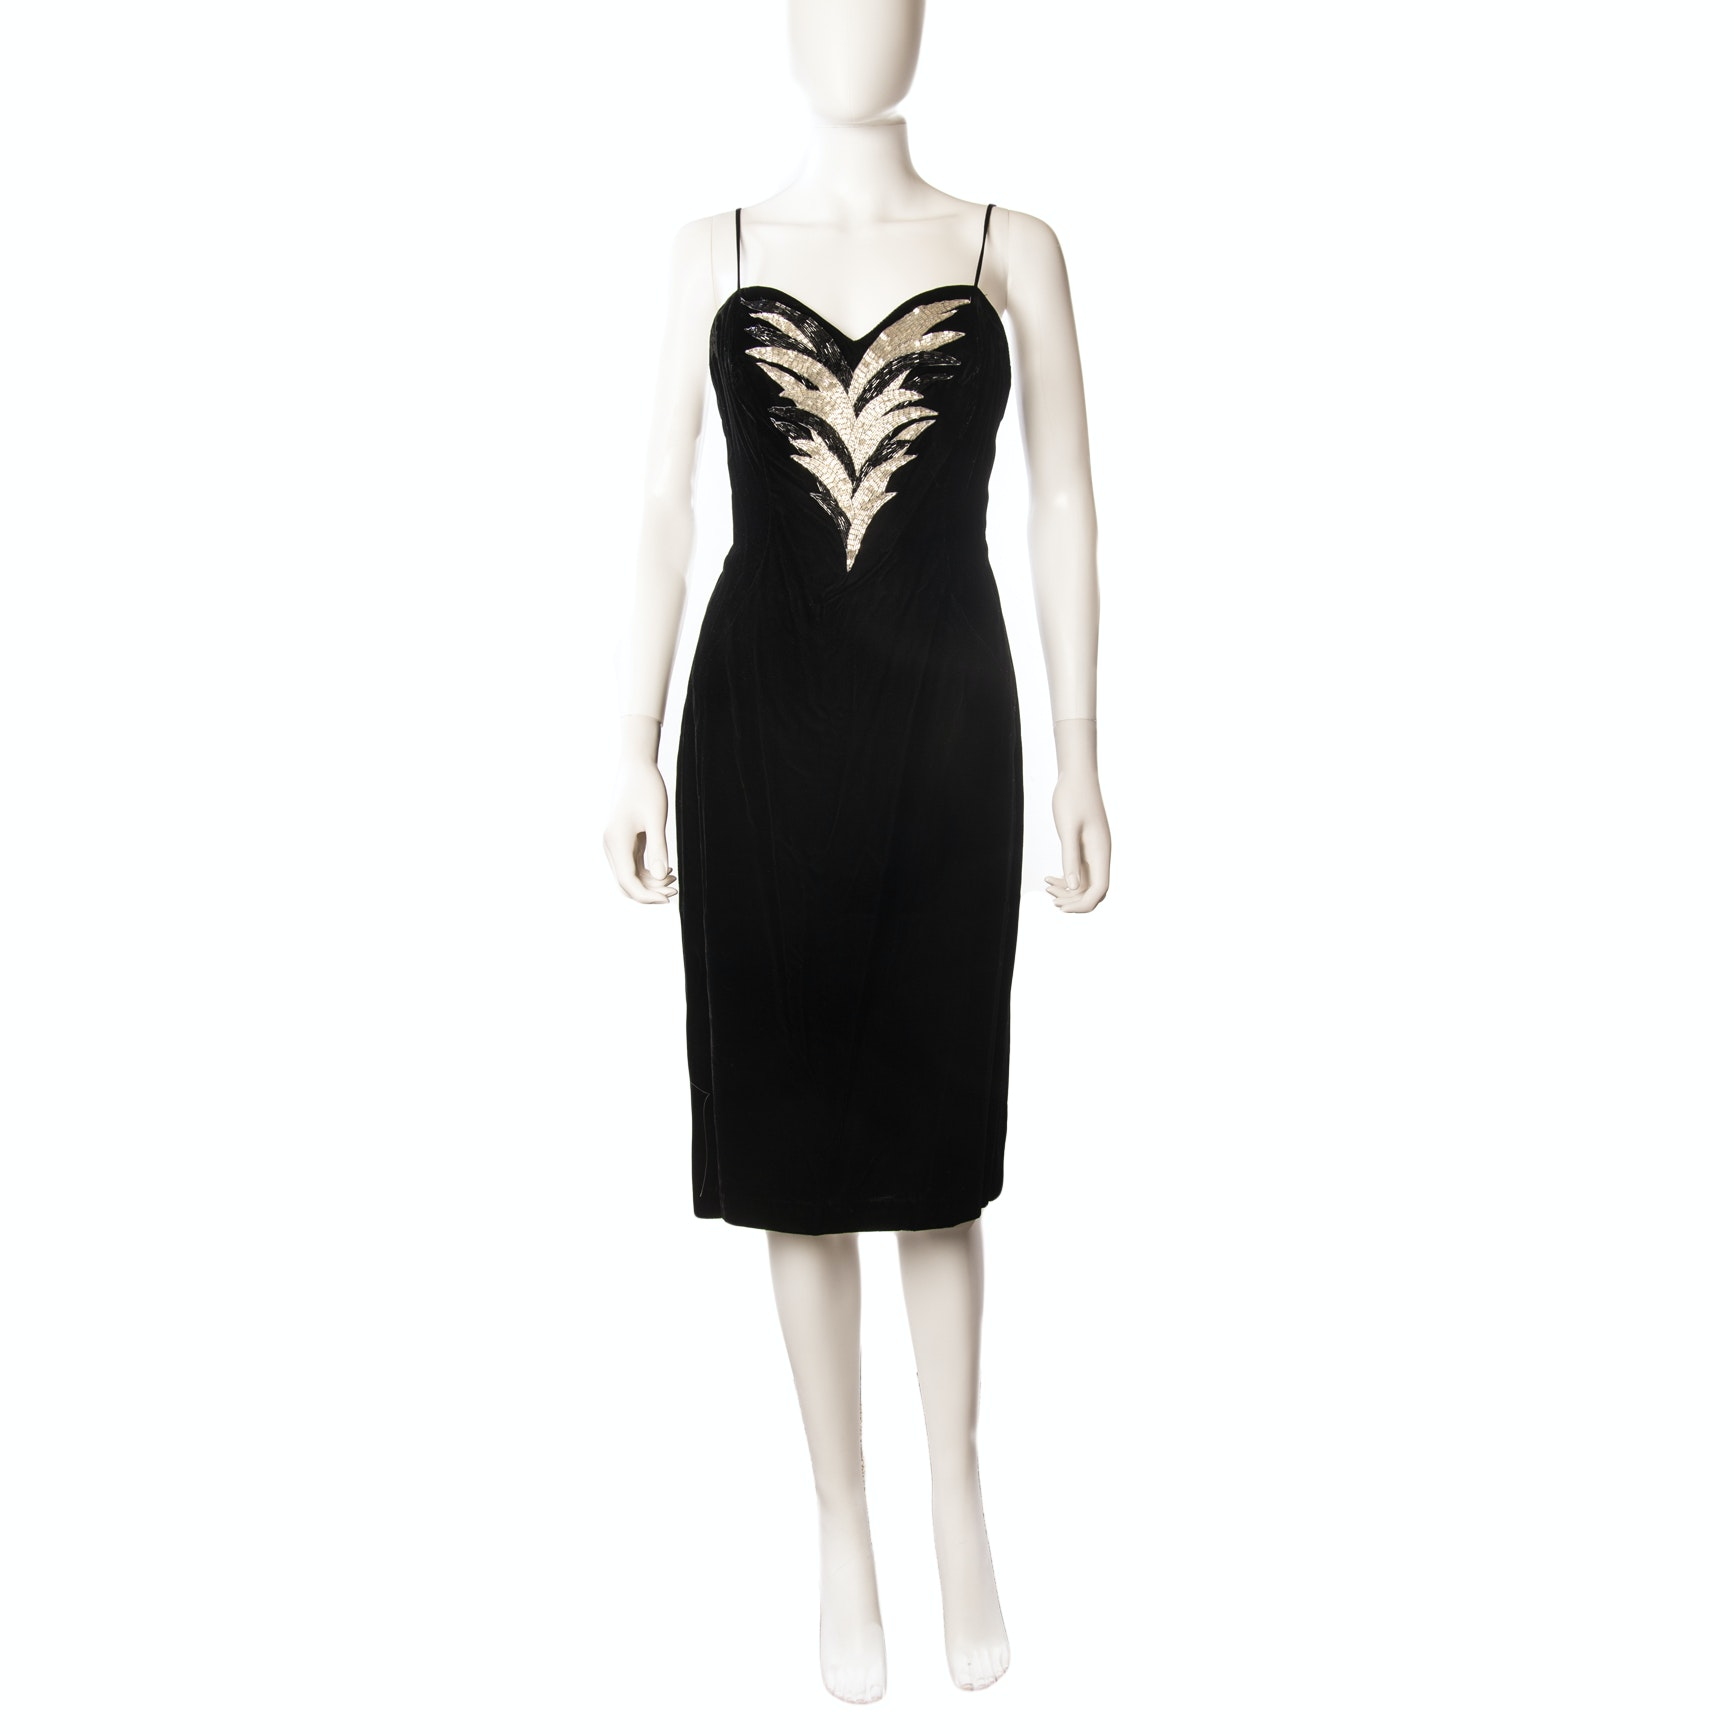 Vintage Rimini Embellished Black Velvet Sleeveless Cocktail Dress